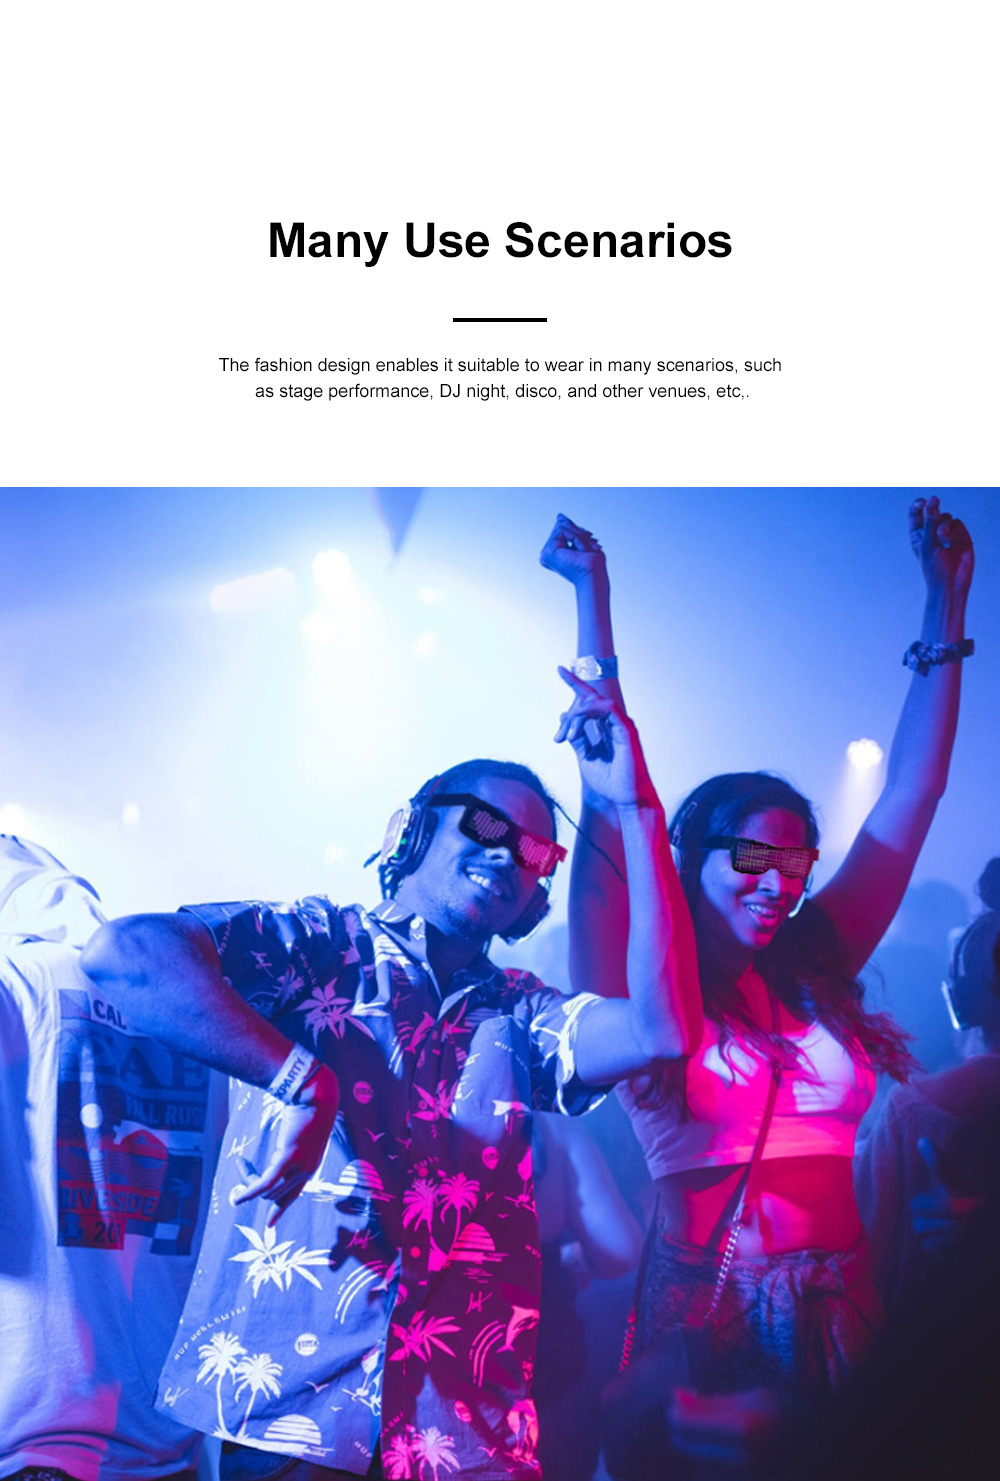 Magic LED Eyeglasses Bluetooth APP Control Luminous Glasses with Silicone Nose Pads for Party Stage Performance 8